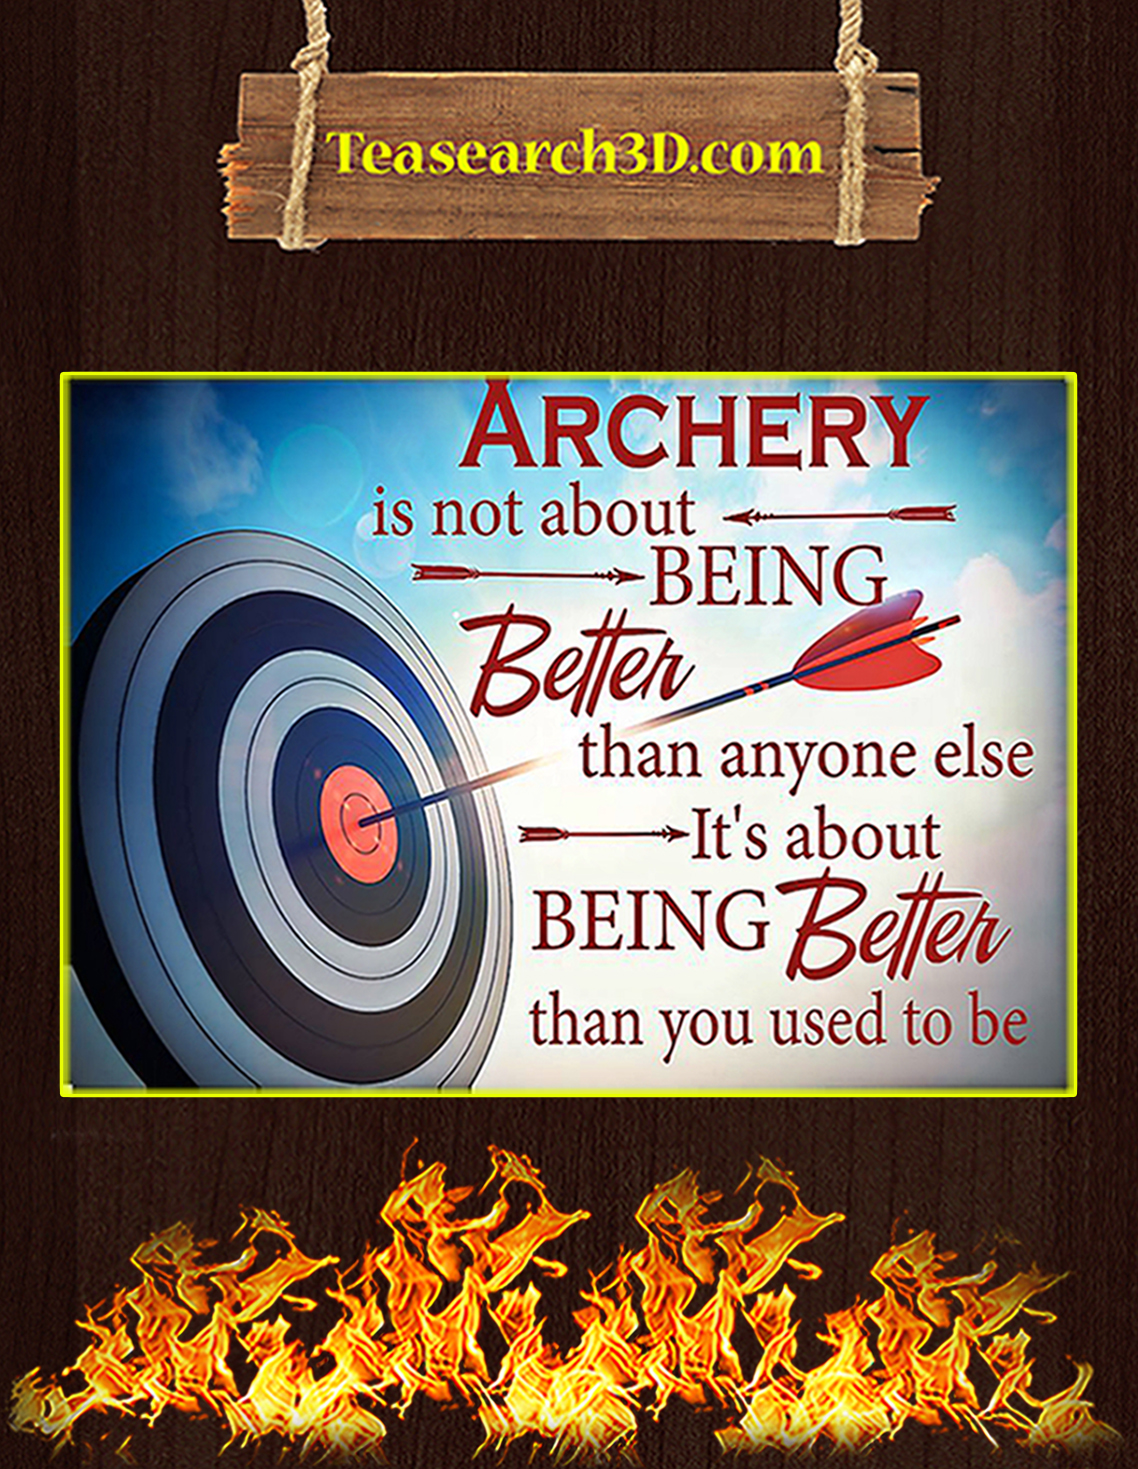 Archery is not about being better than anyone else poster A3